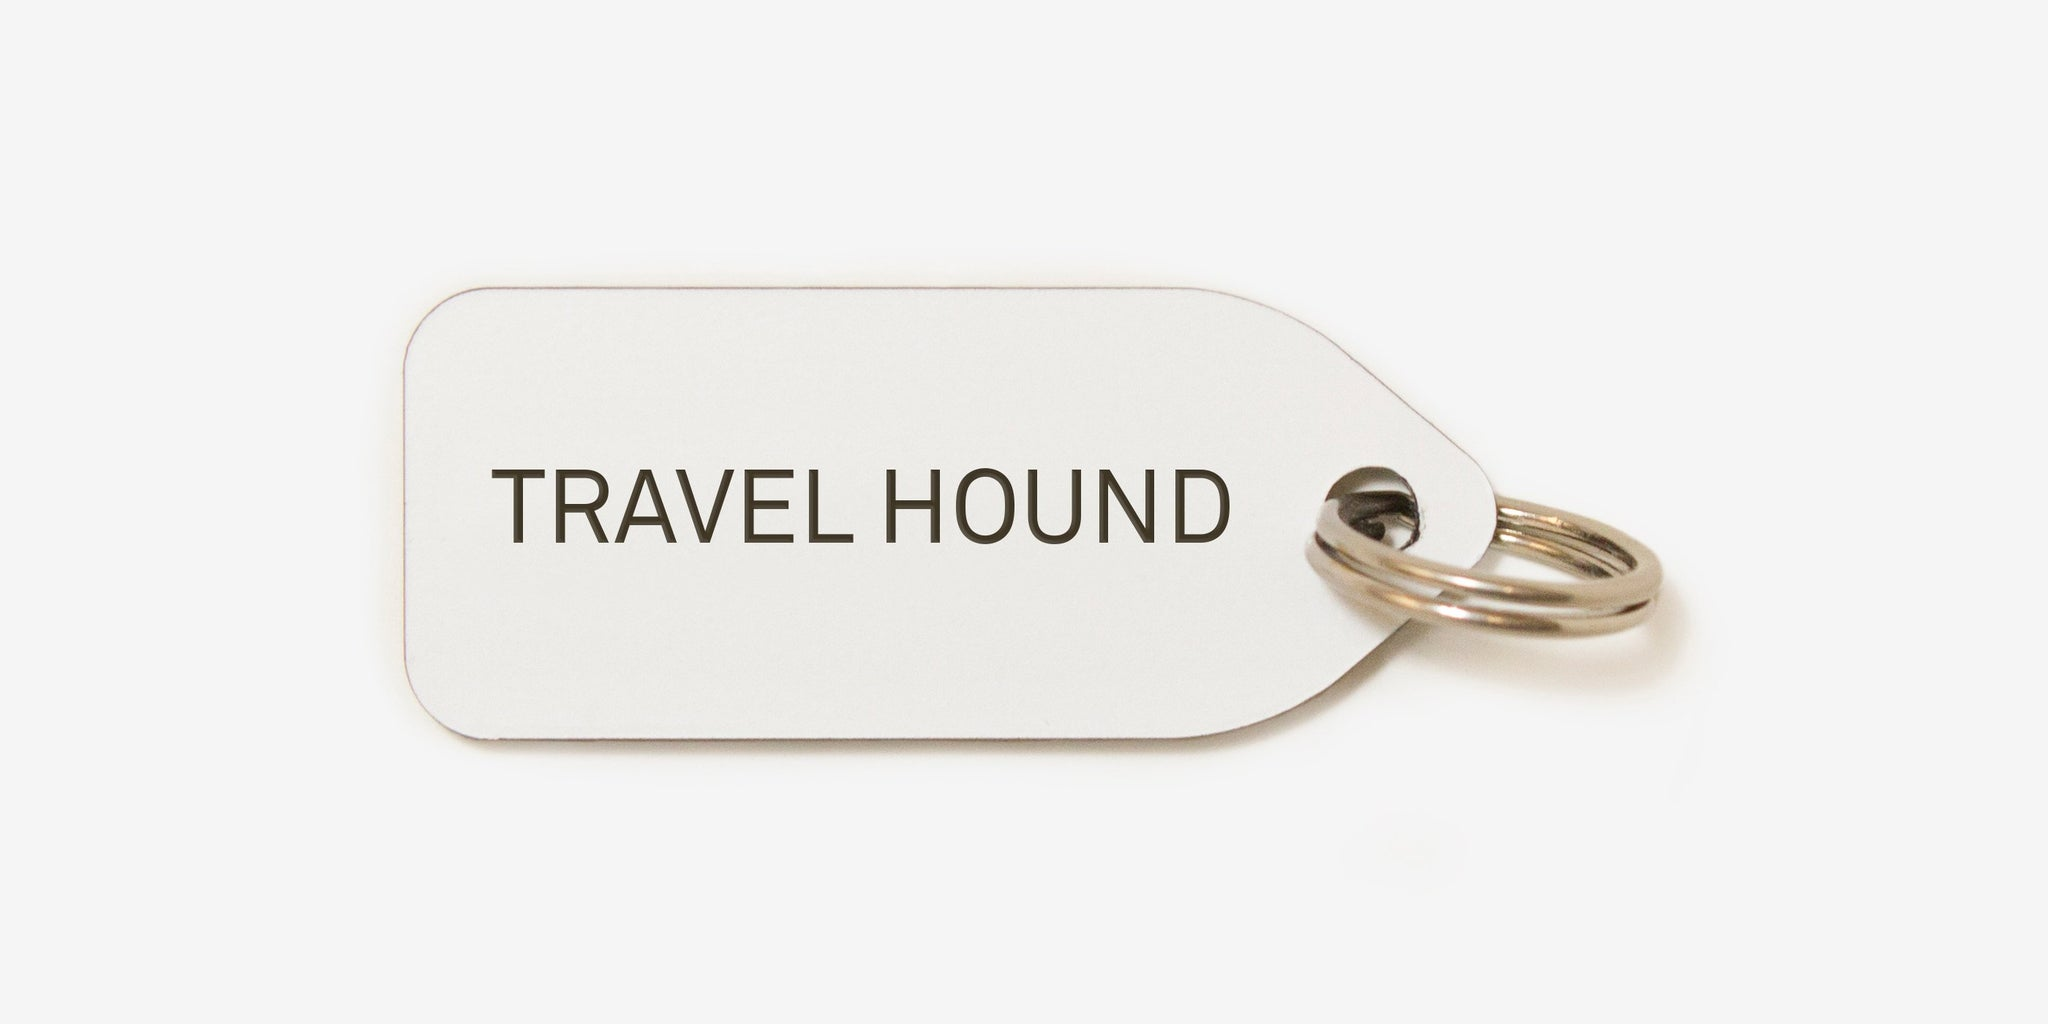 Travel hound